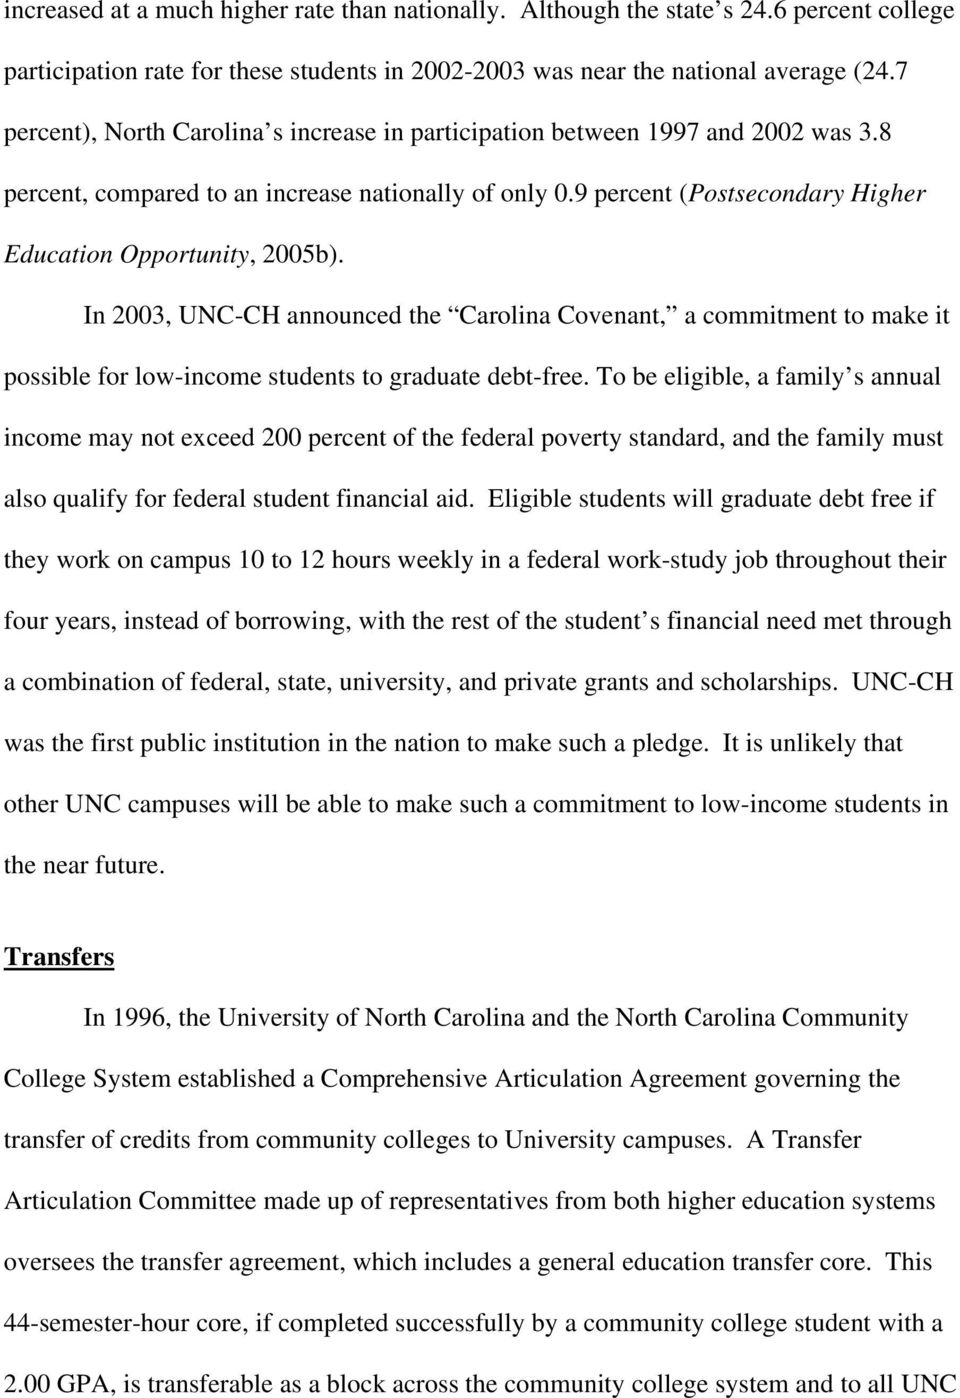 9 percent (Postsecondary Higher Education Opportunity, 2005b). In 2003, UNC-CH announced the Carolina Covenant, a commitment to make it possible for low-income students to graduate debt-free.